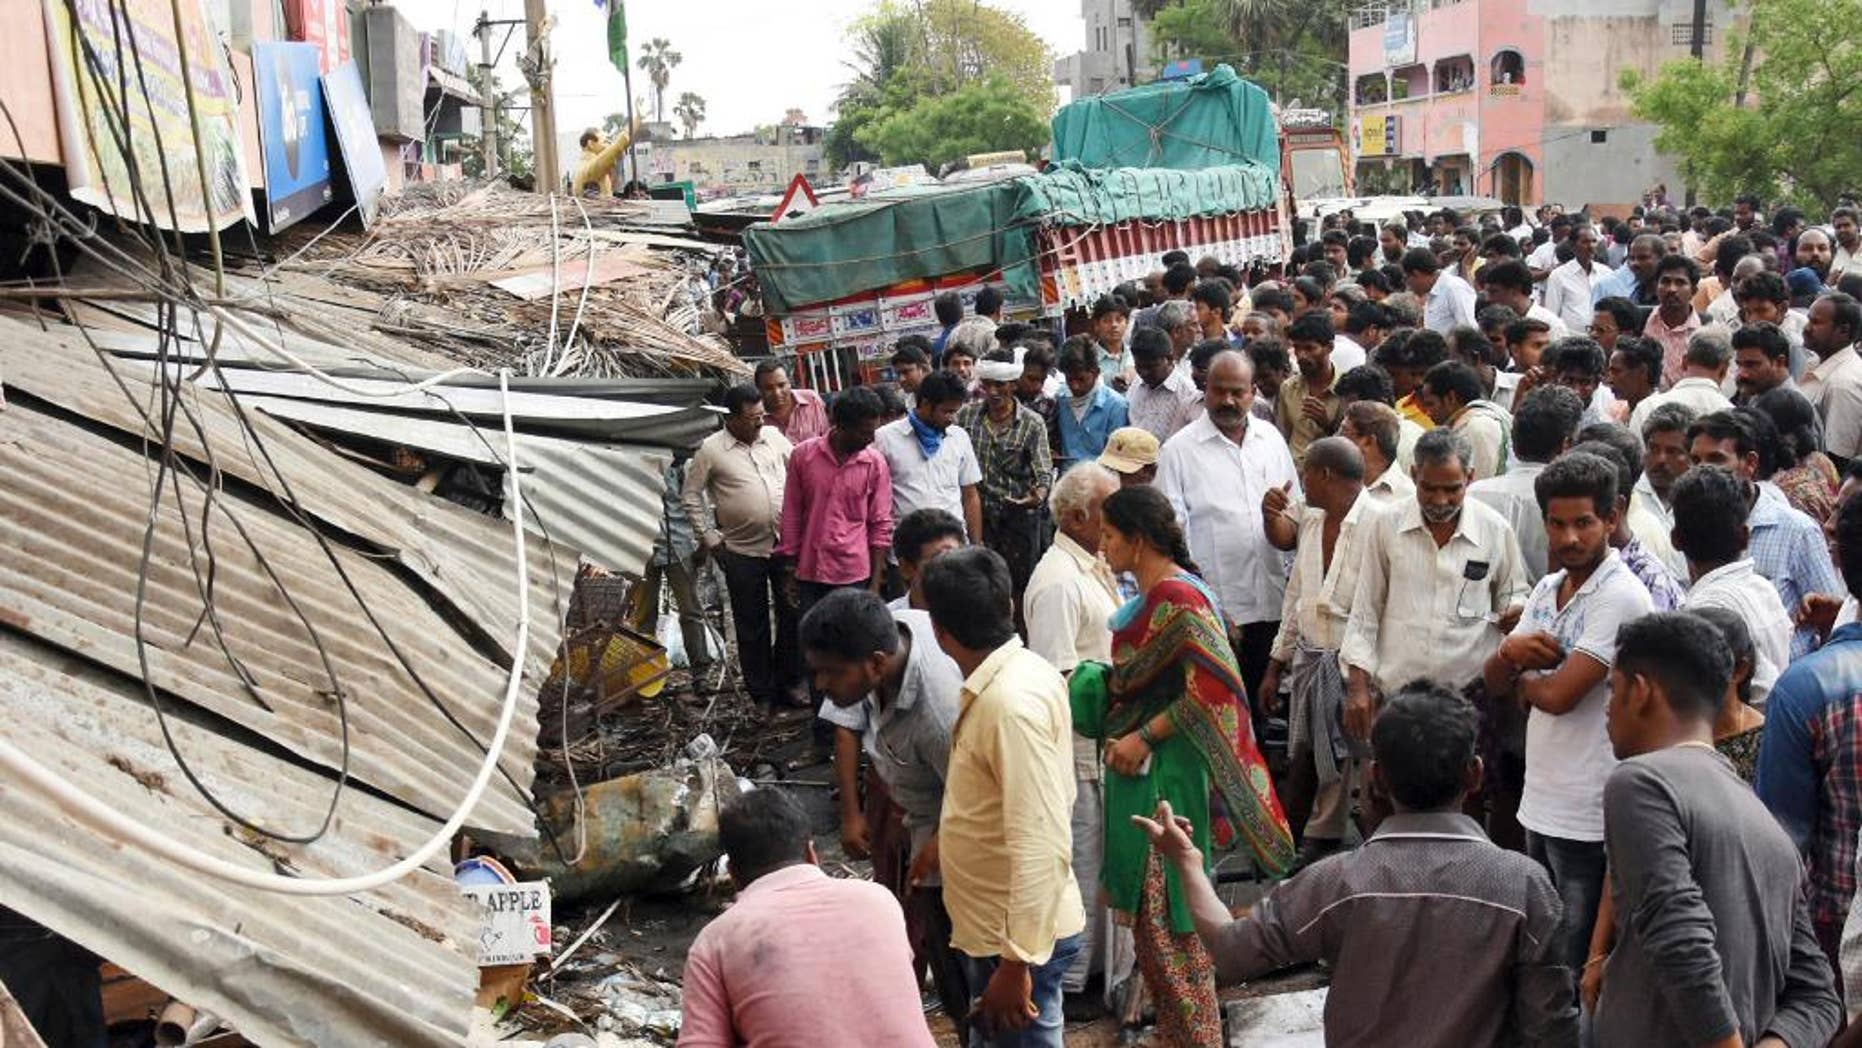 People stand at the site of an accident after a truck driver lost control and plowed into a group of protesting farmers in Yerpedu, in the southern Indian state of Andhra Pradesh, Friday, April 21, 2017. At least a dozen of those killed were electrocuted because the bus first hit an electricity pole causing high-tension wires to fall onto the crowd, police official Jaya Lakshmi said. The farmers were gathered outside the main police station protesting against illegal sand mining in their area. (AP Photo)